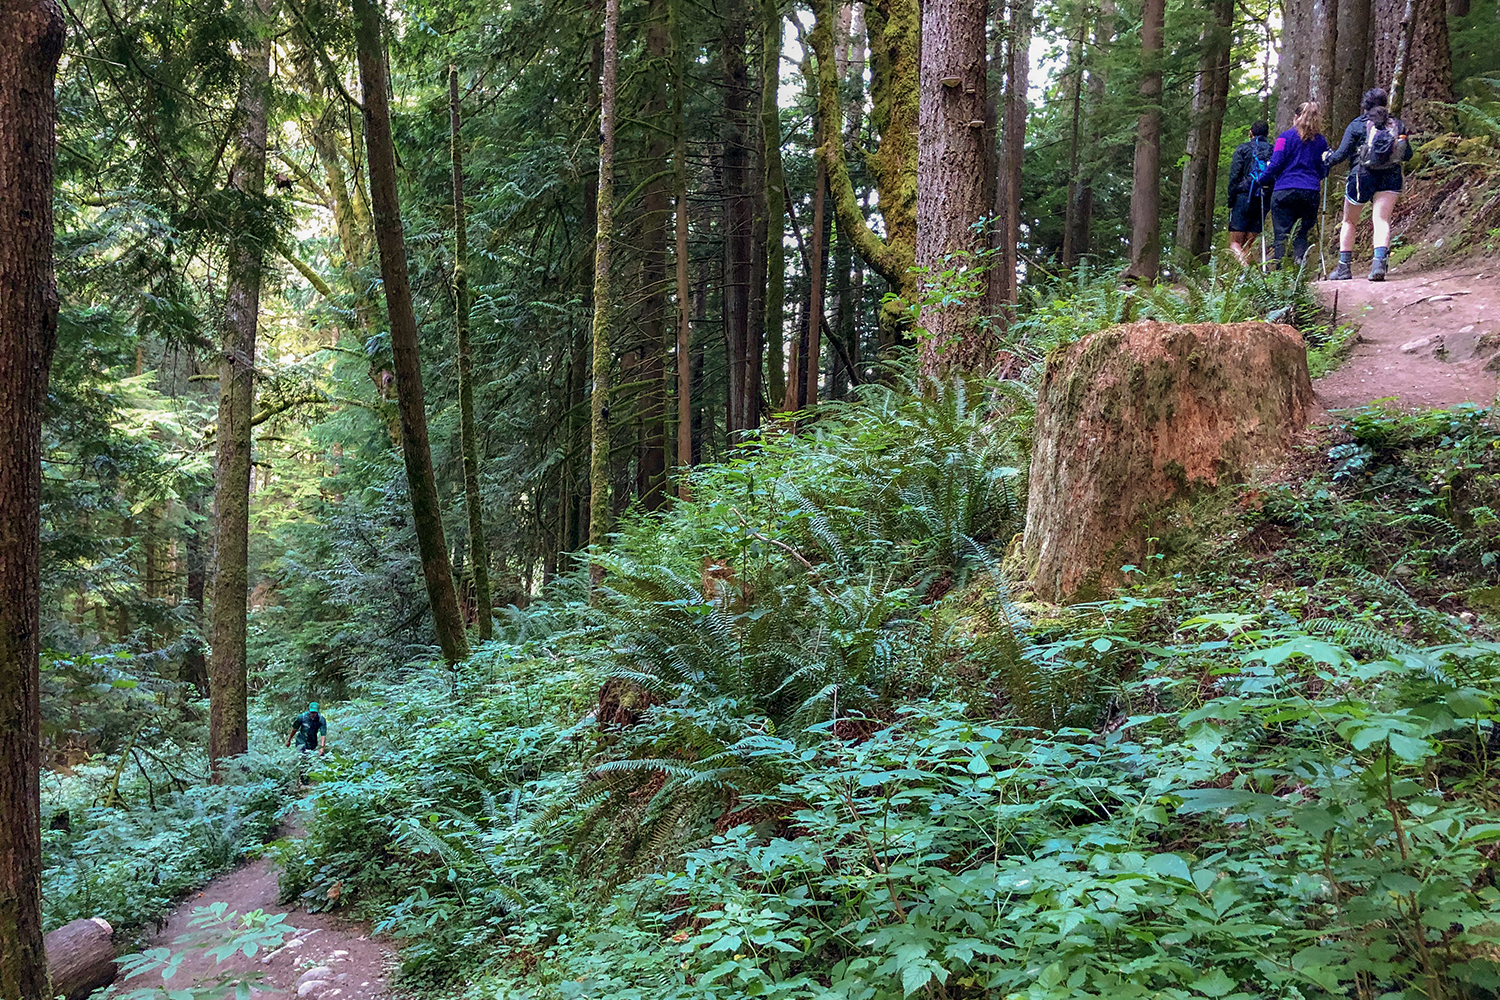 <p>After 15-minutes on the trail, the first switchback reveals itself leading upward into a lush, gradual incline. (Image:{&nbsp;}Rachael A. Jones / Seattle Refined){&nbsp;}</p>